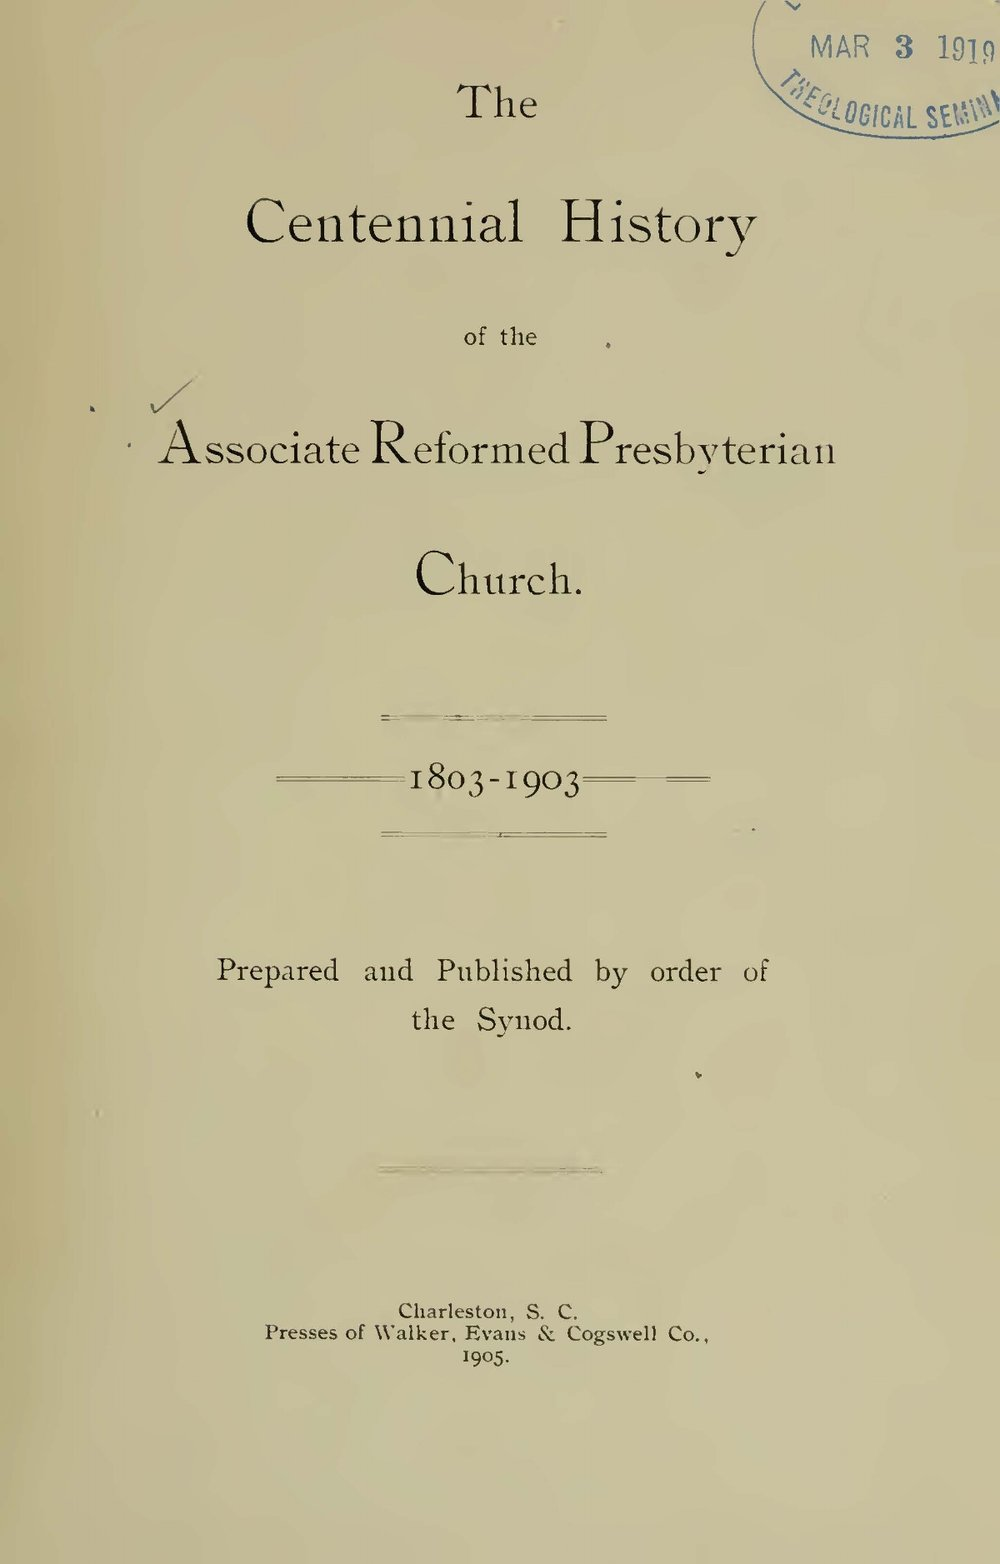 Galloway, Jonathan Caldwell, The Centennial History of the Associate Reformed Presbyterian Church Title Page.jpg